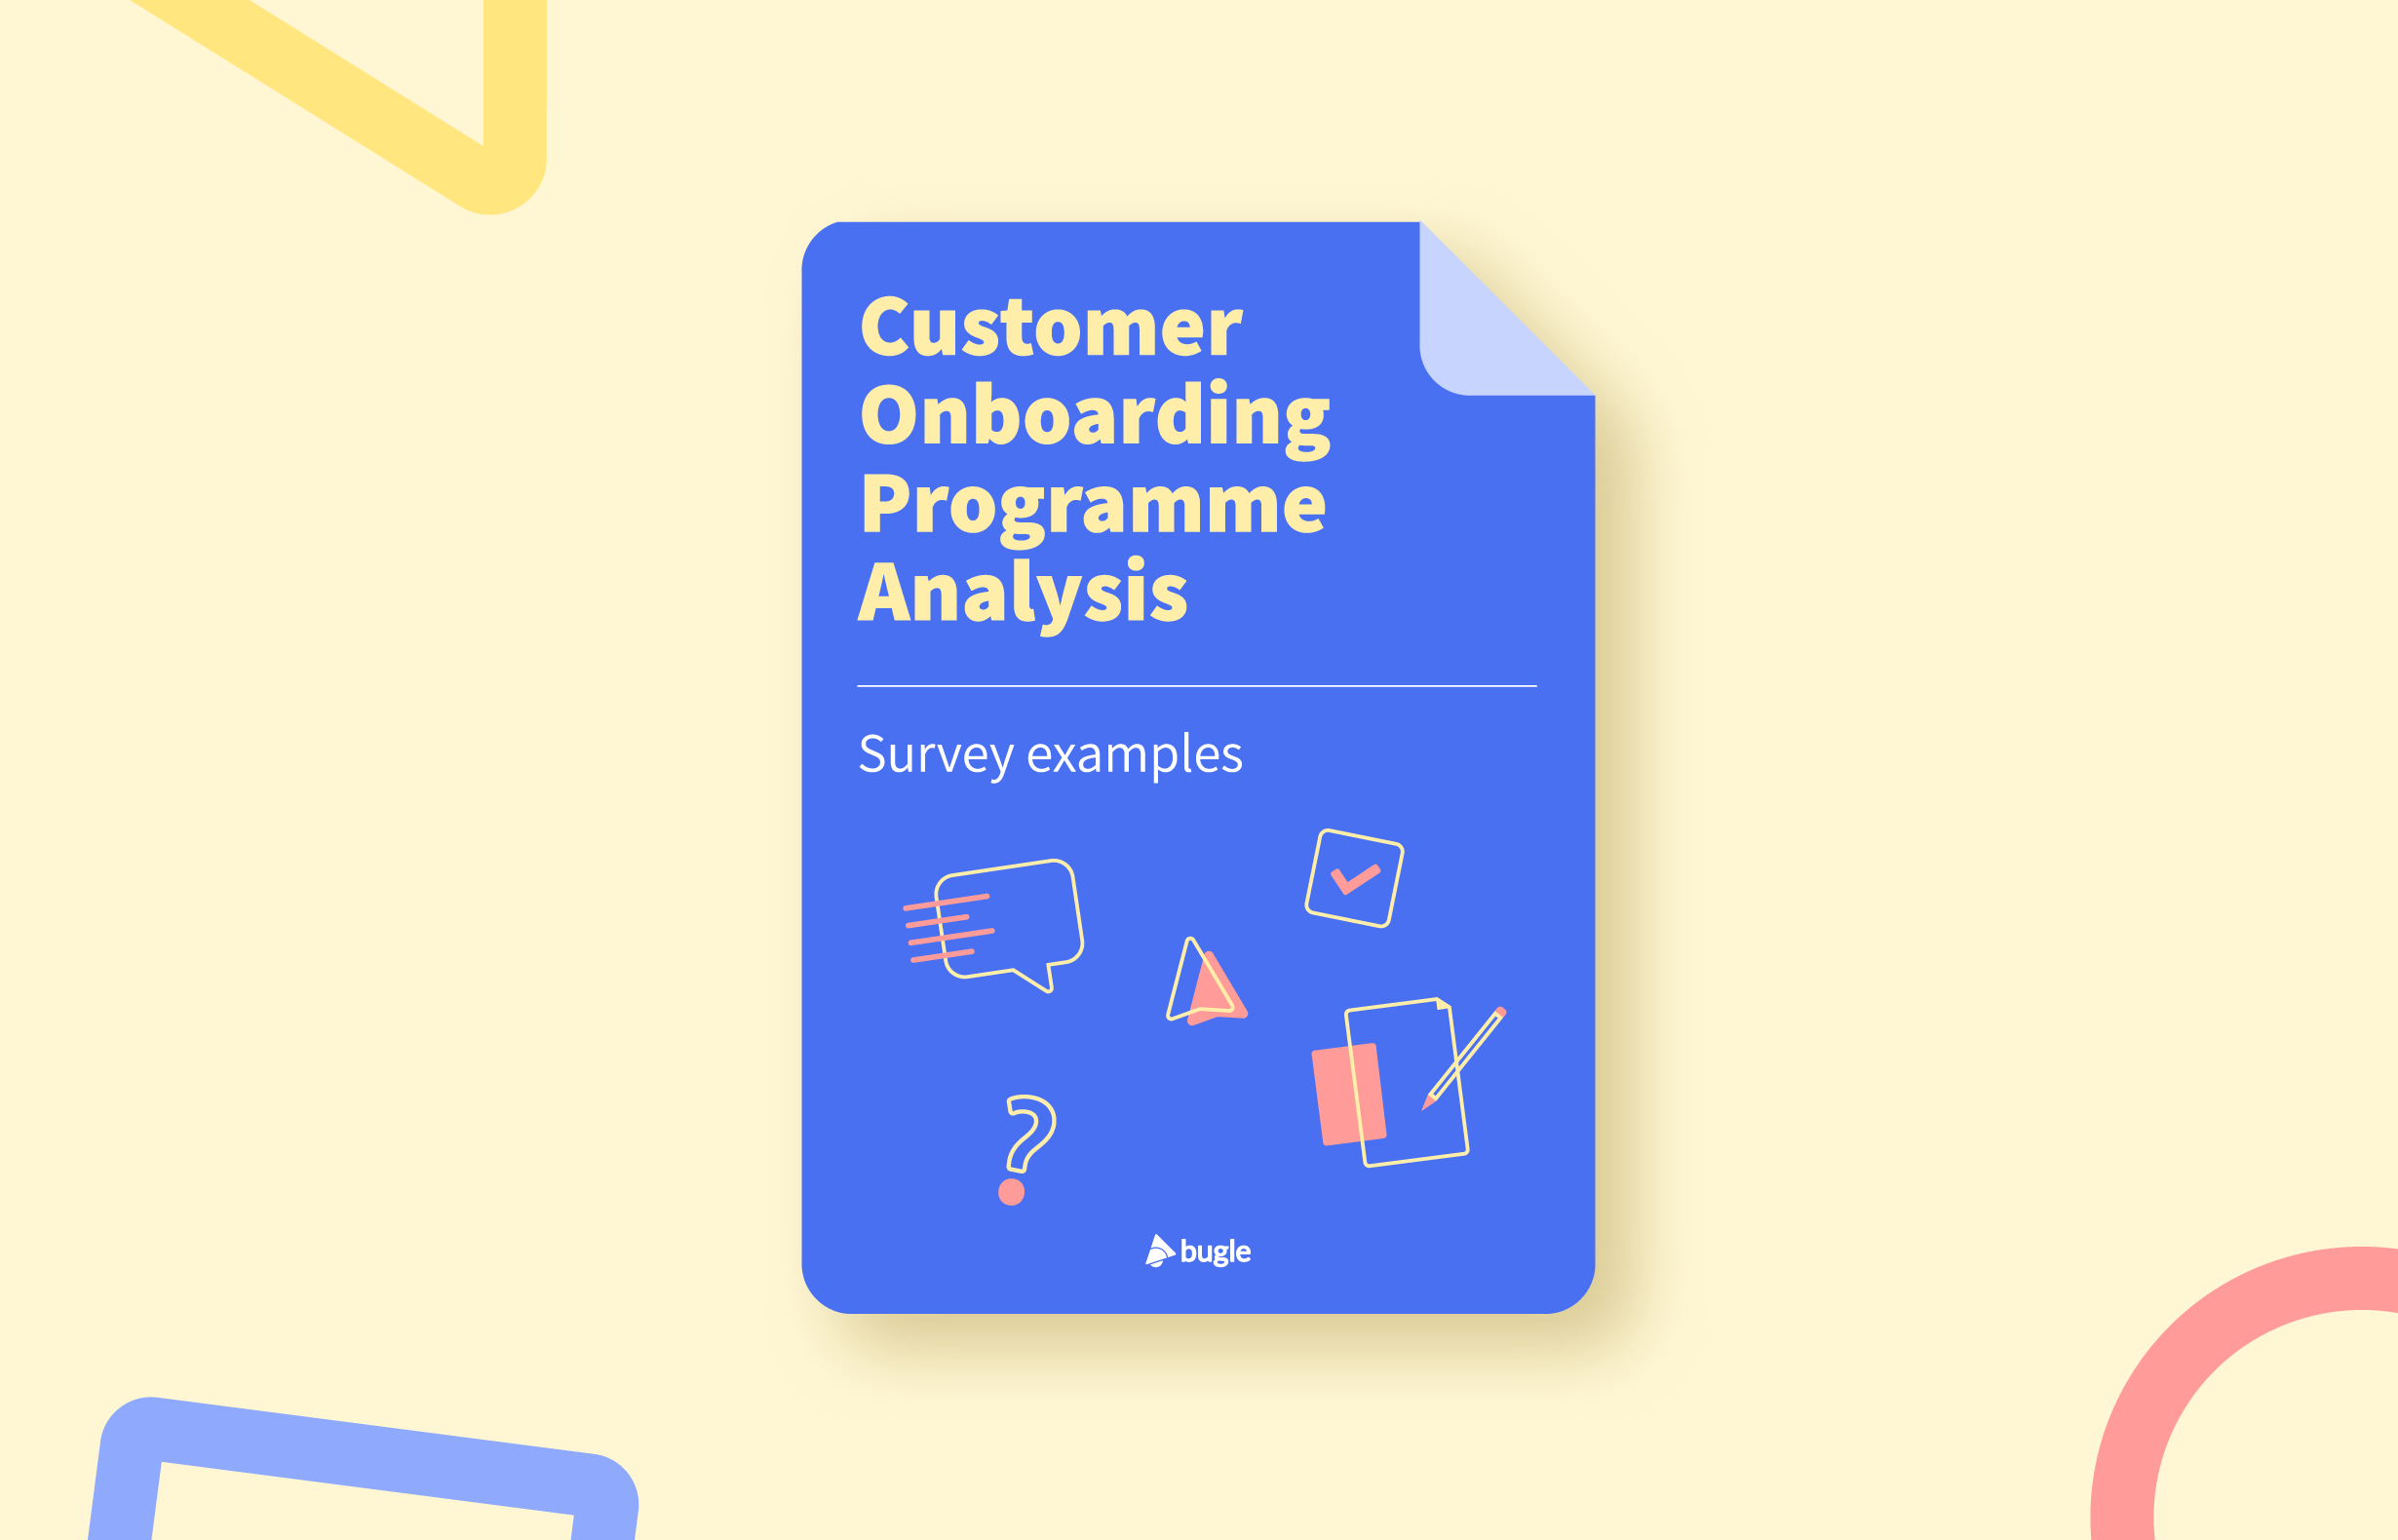 Customer Onboarding Programme Analysis Survey examples